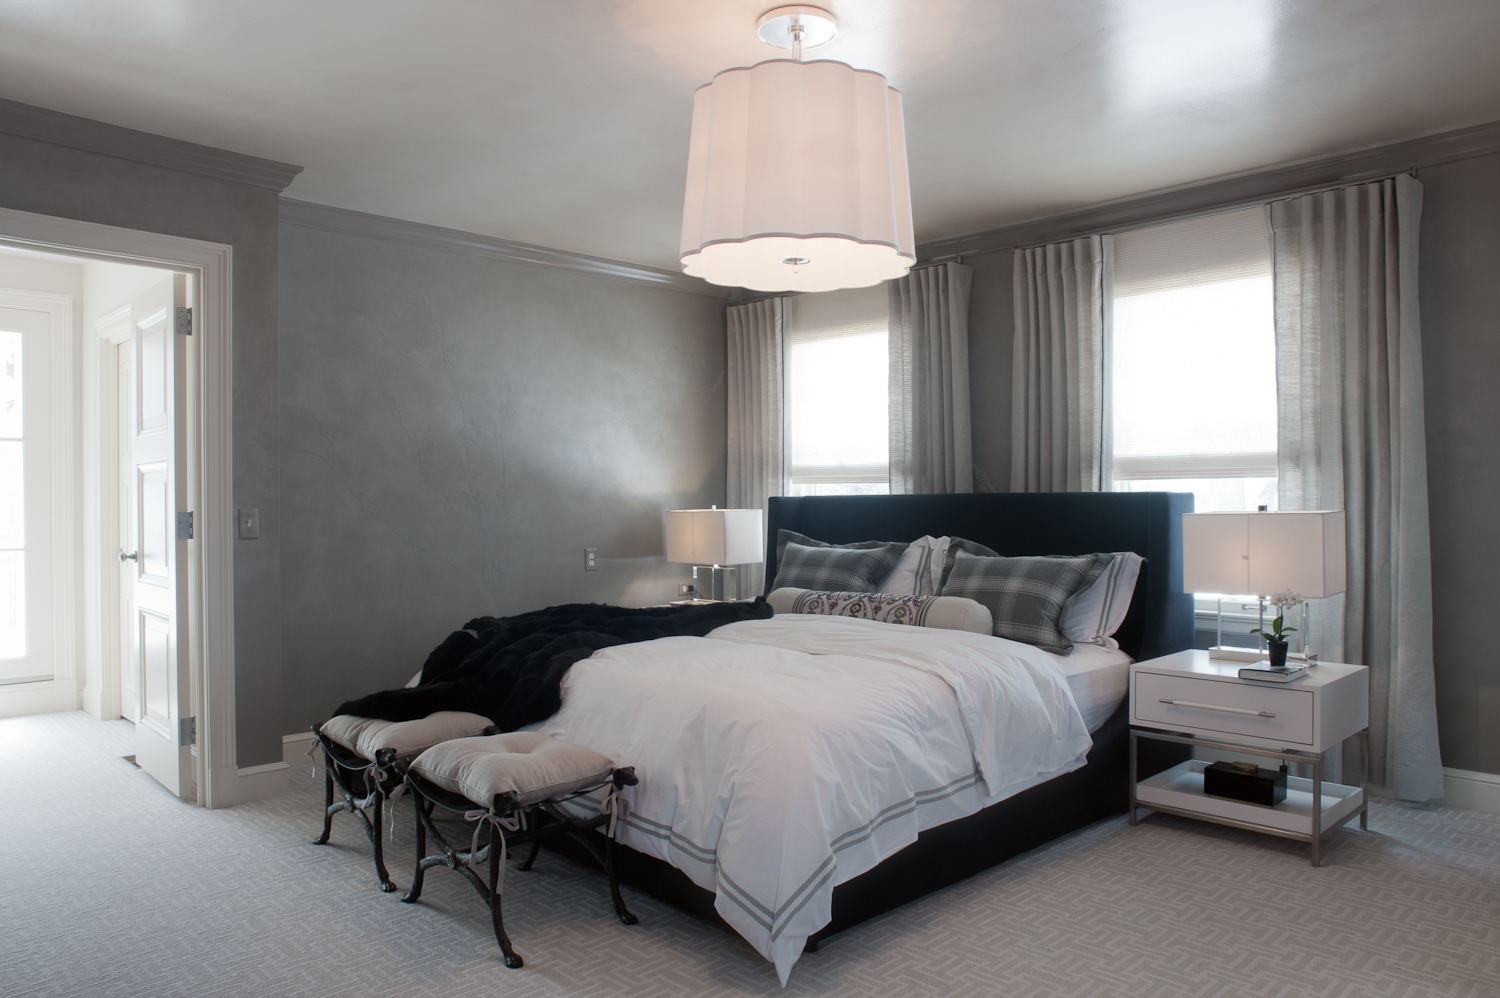 Master bedroom, 2014 ASID Showcase Home